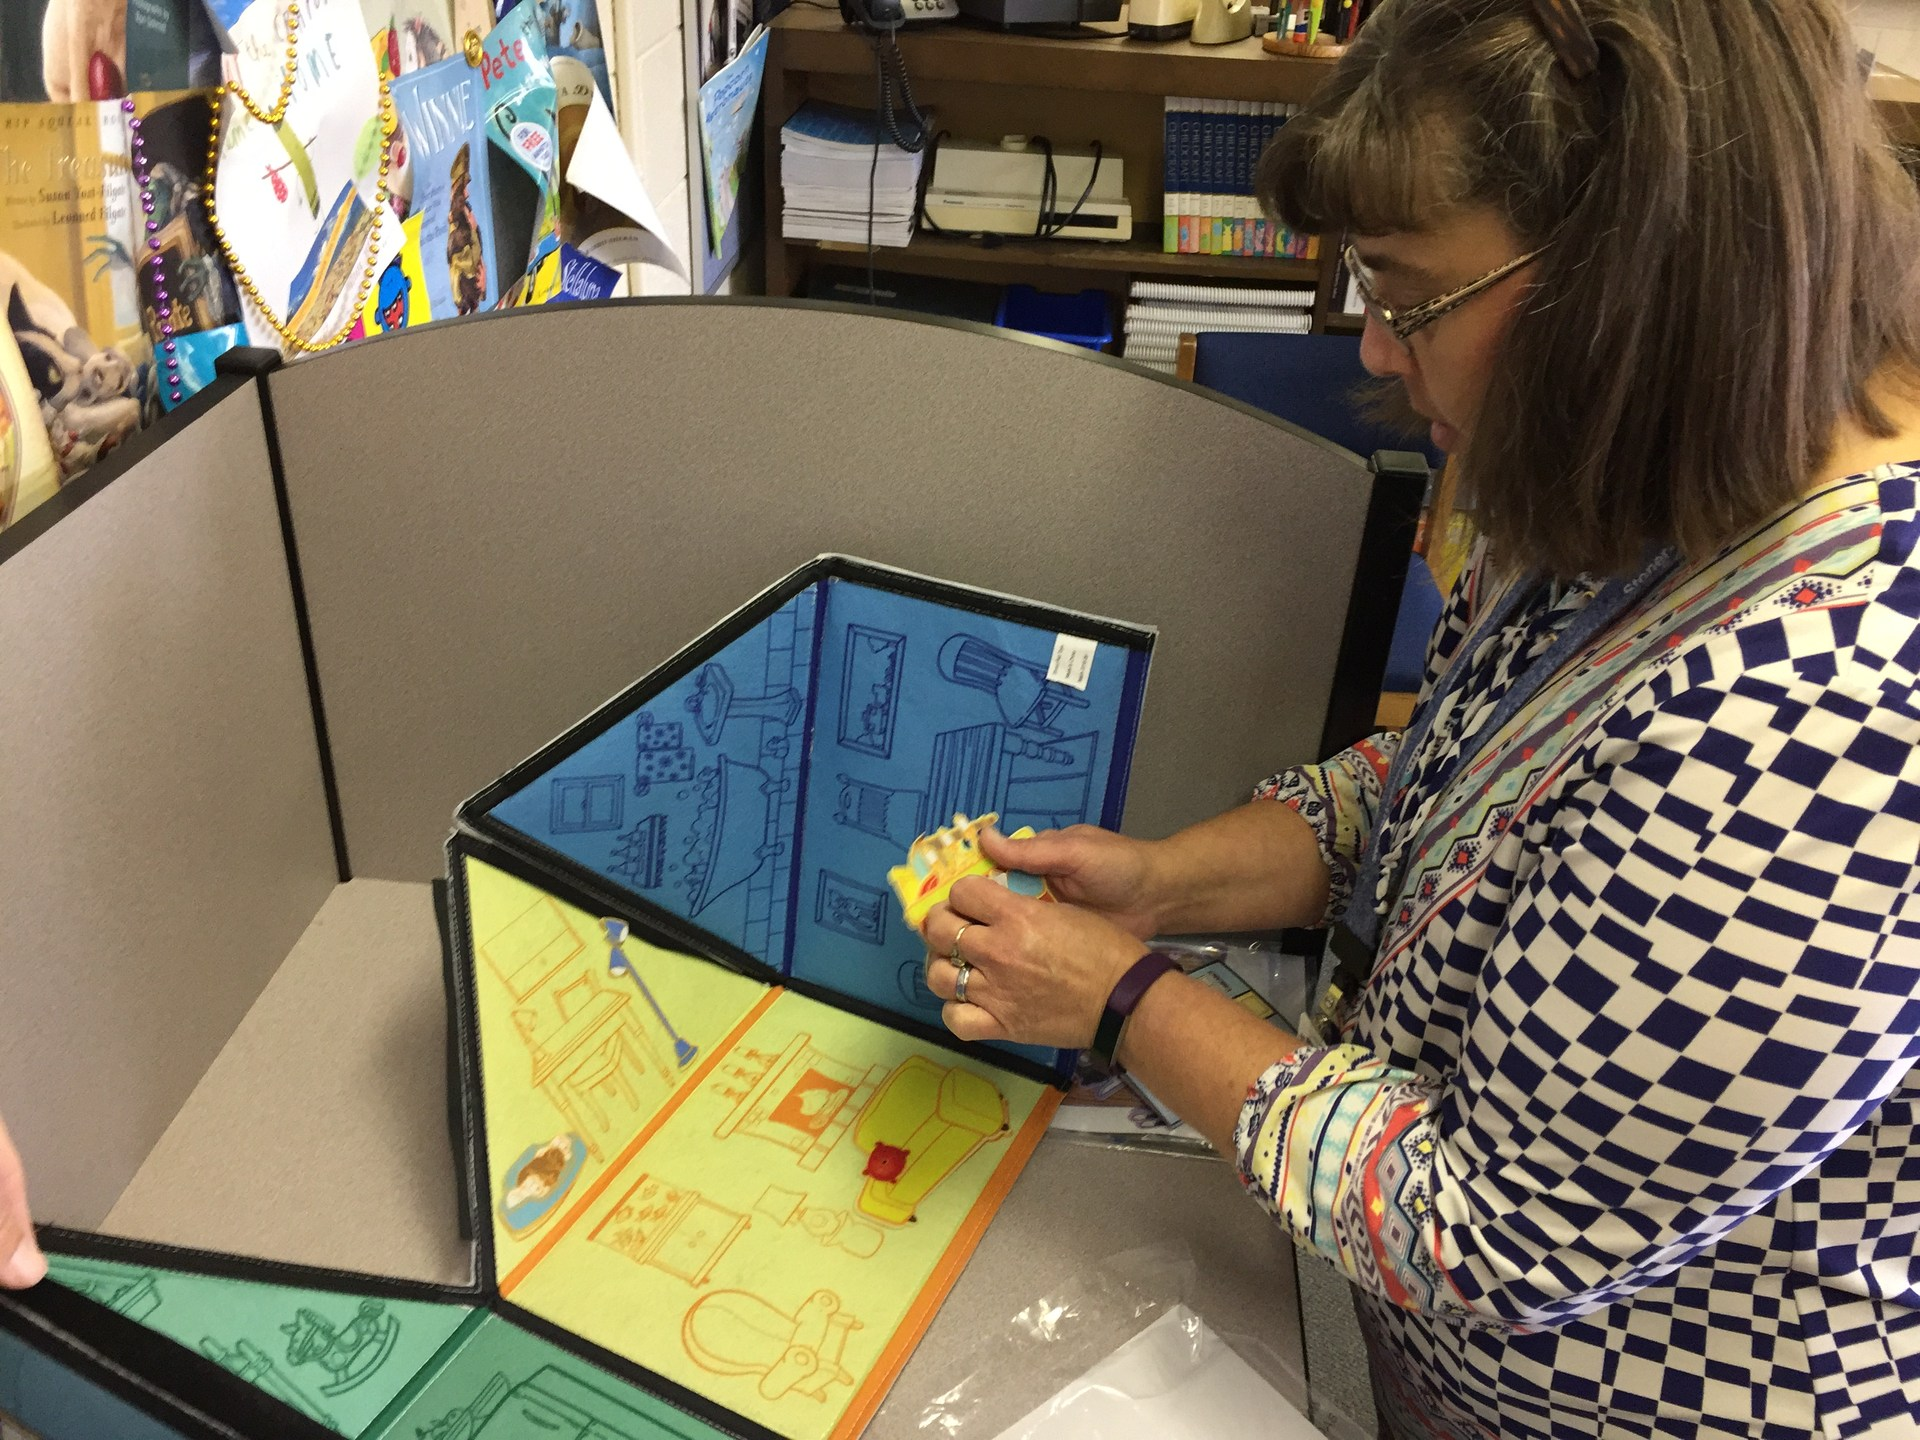 Thanks, Donors Choose, for helping get sensory materials for Stoner-Thomas media center!